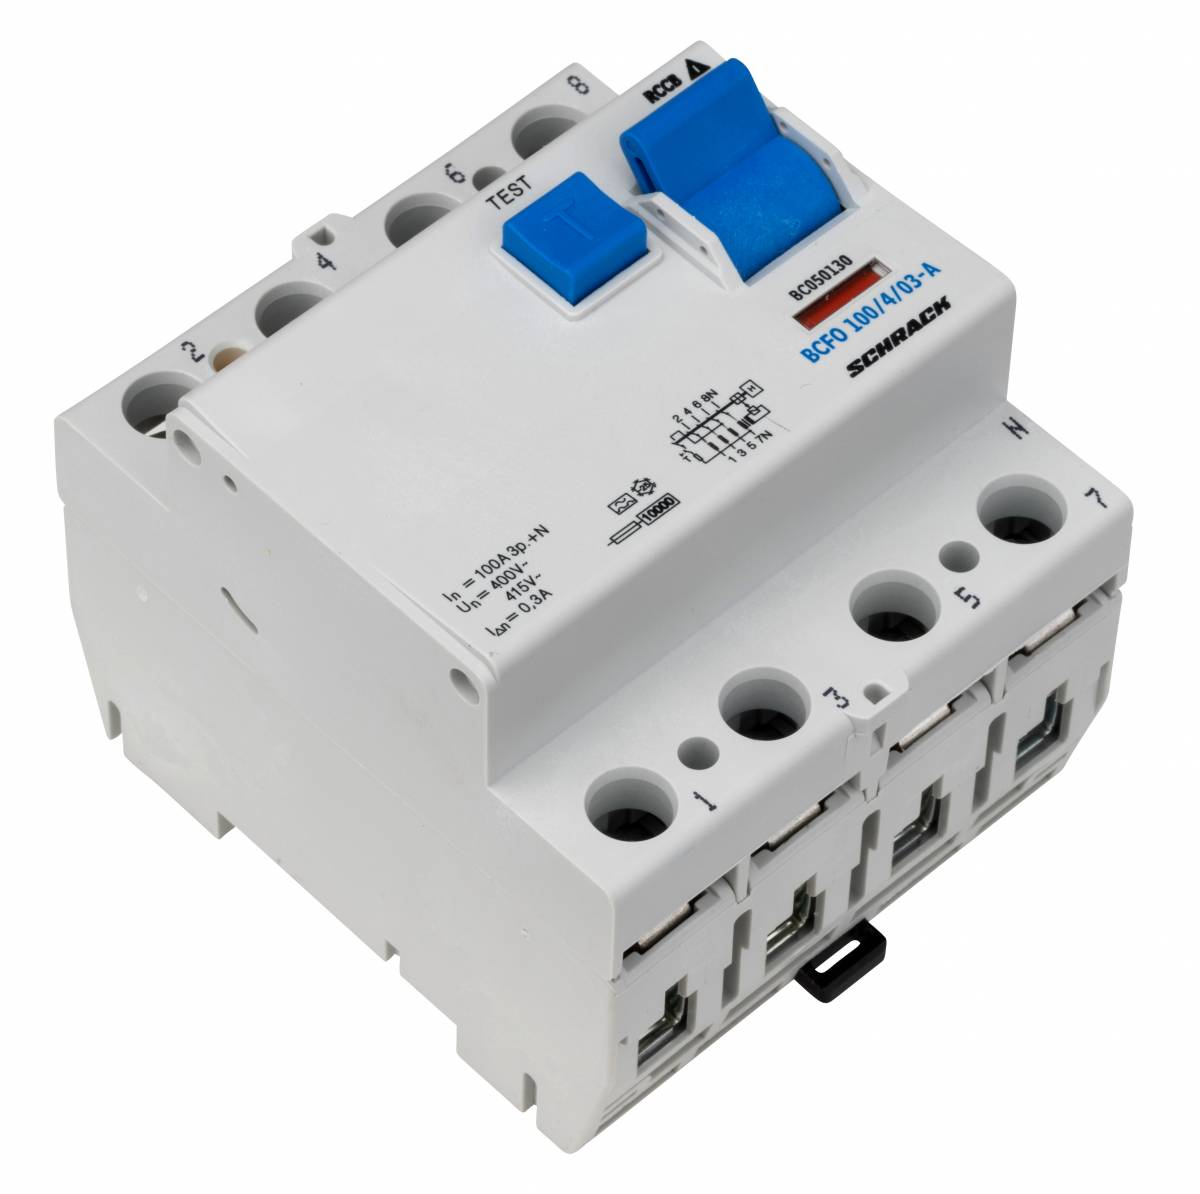 Residual current circuit breaker, 100A, 4-p, 300mA, type A